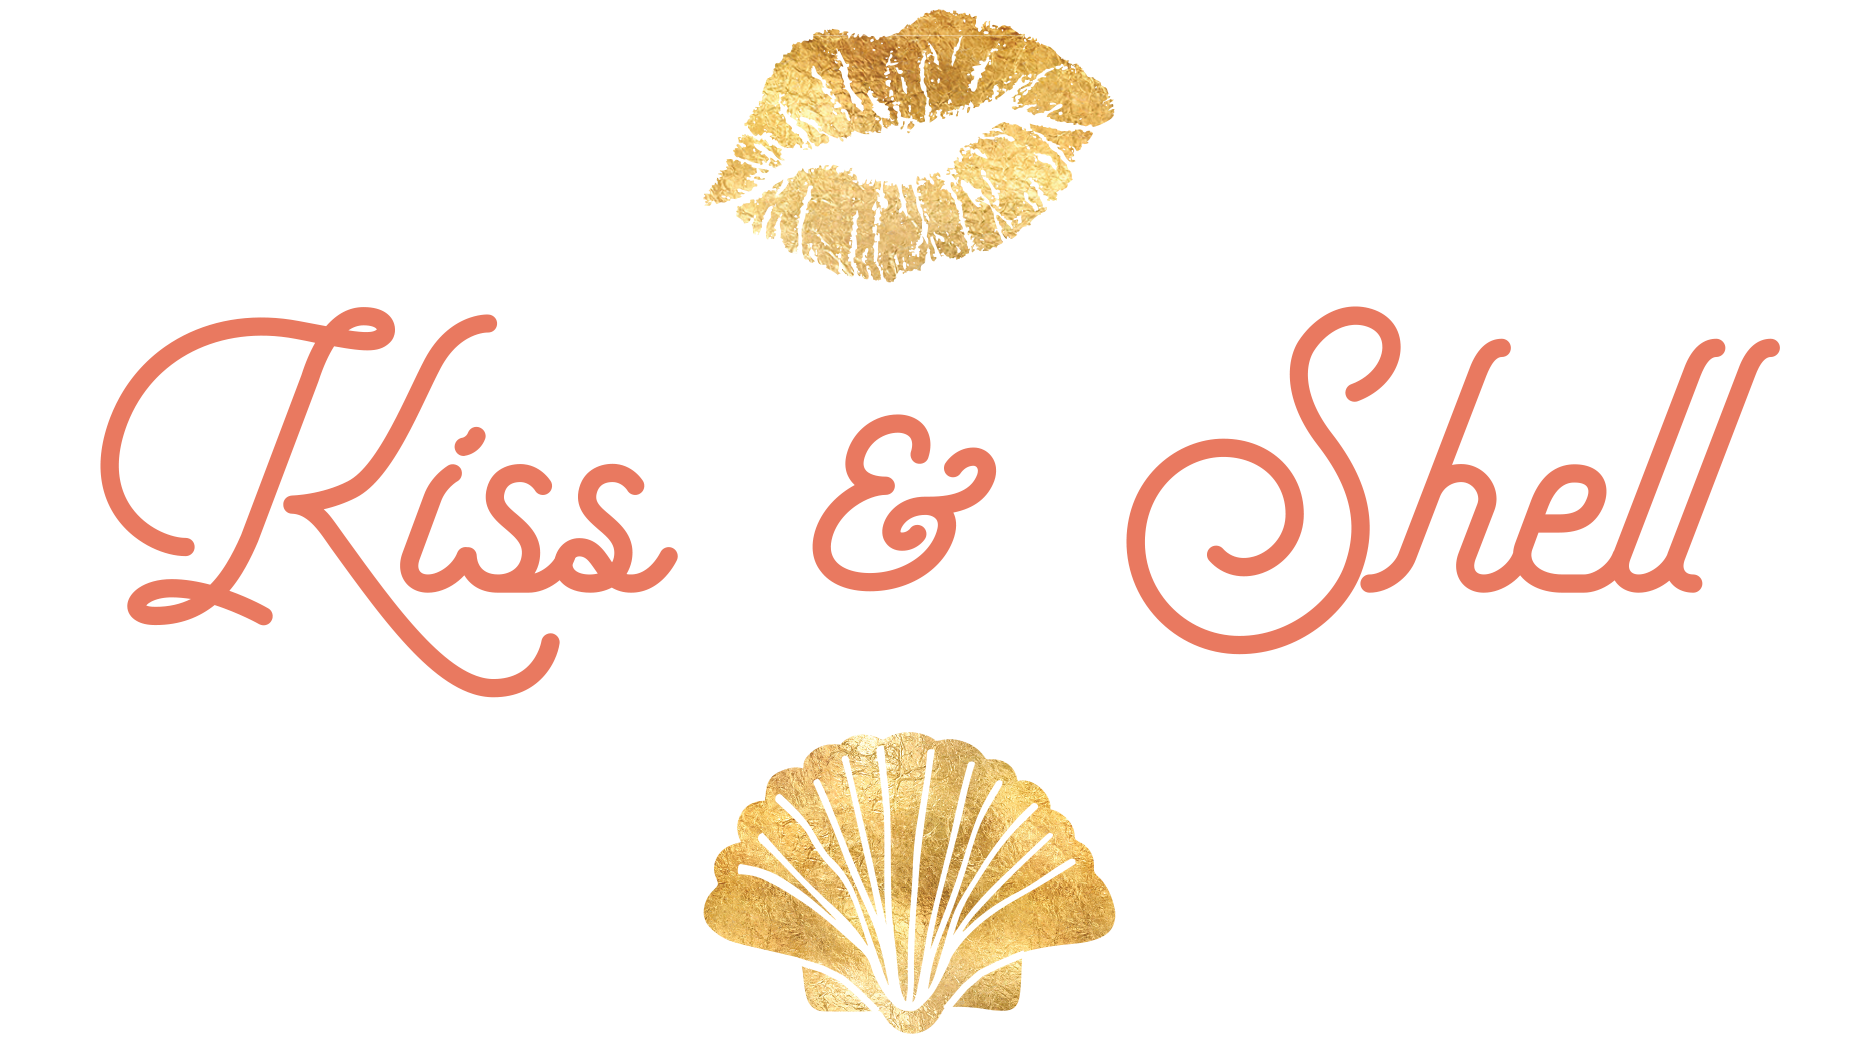 kiss-and-shell-logo-shopify.png